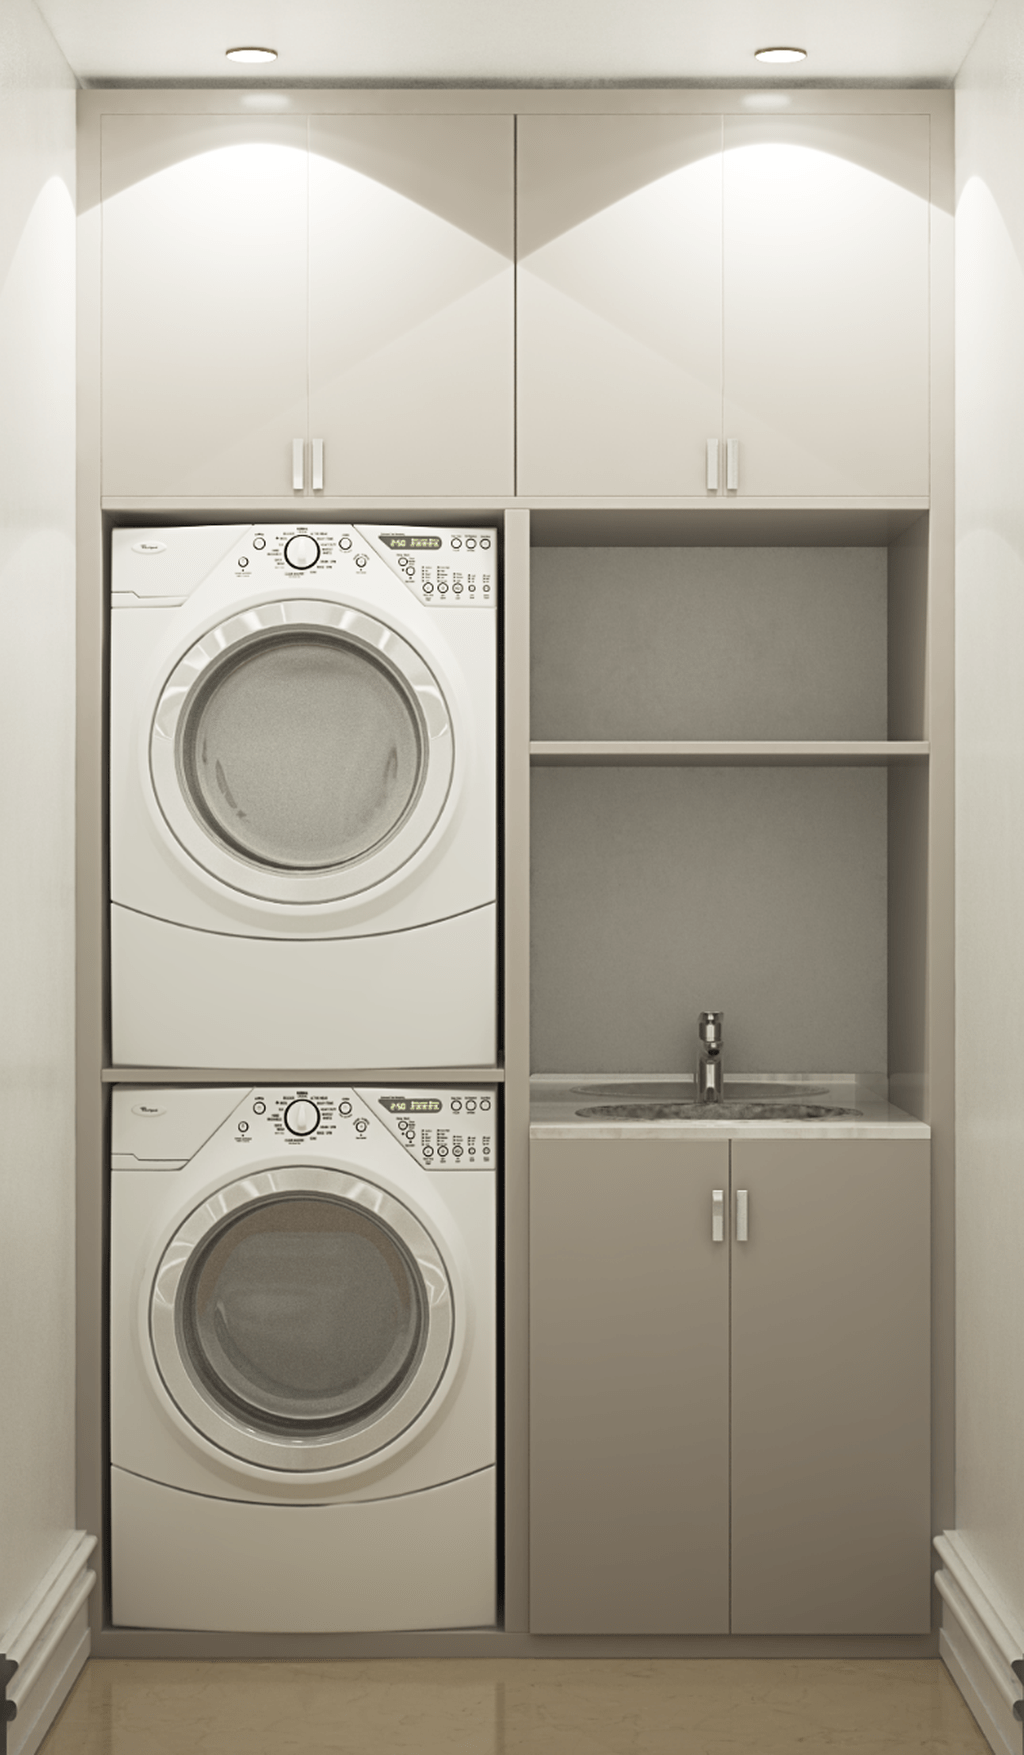 Inspiring Small Laundry Room Design And Decor Ideas 02